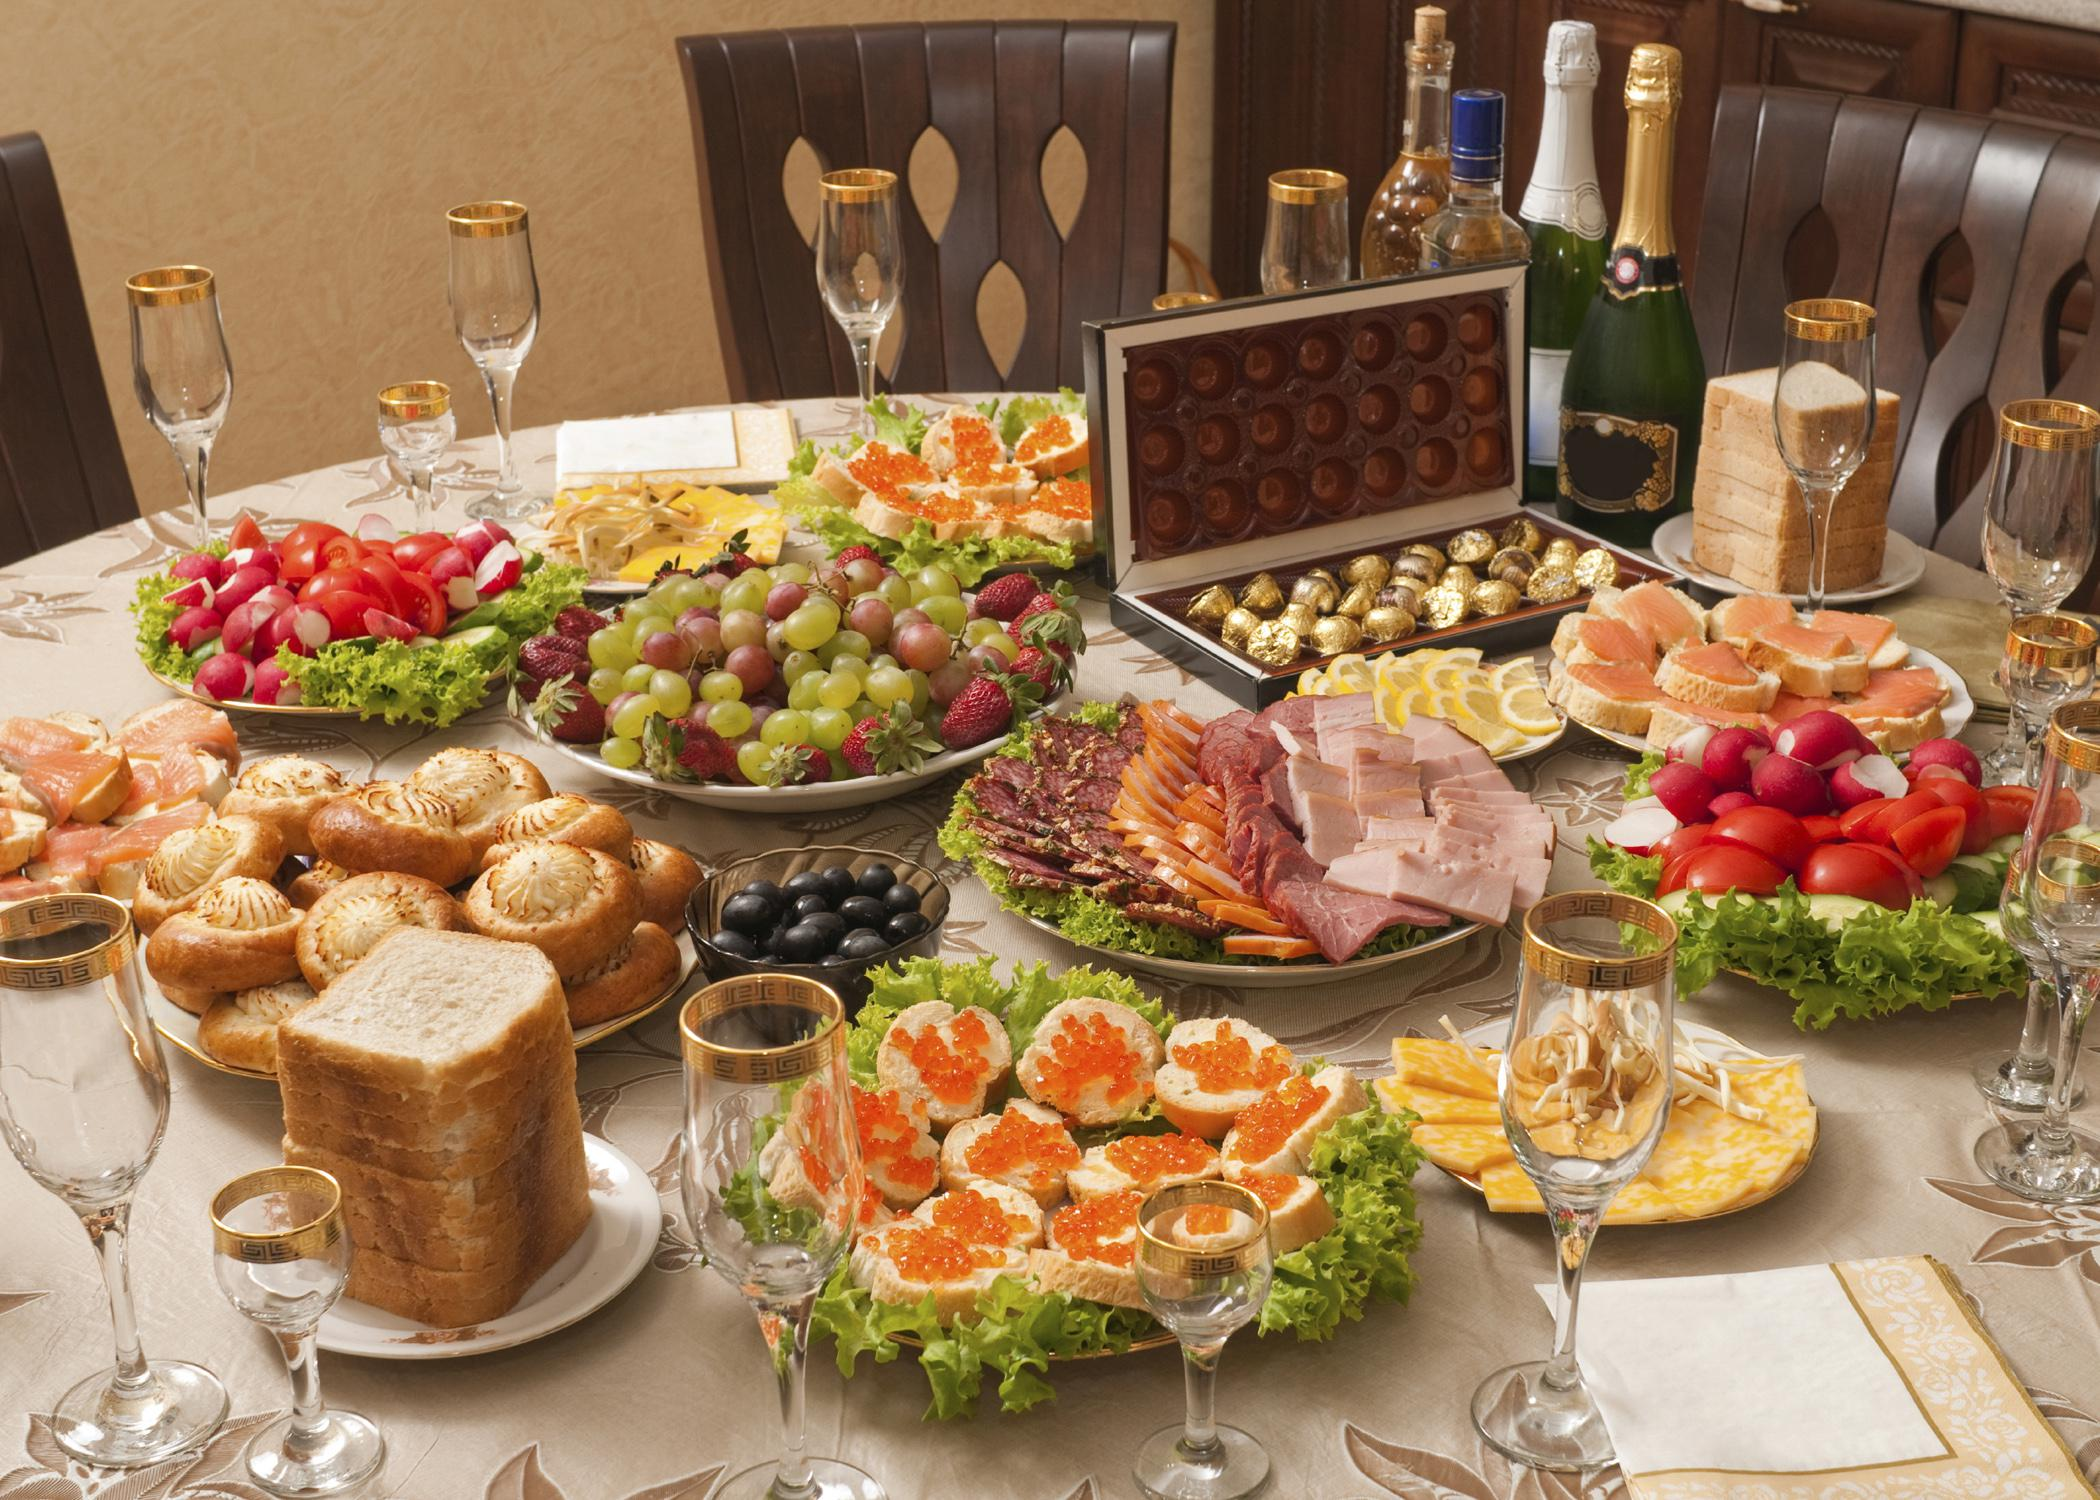 Appreciate holiday food displays, but do not get carried away with unhealthy options, including the beverage choices. (Photo by Getty Images/iStockphoto)